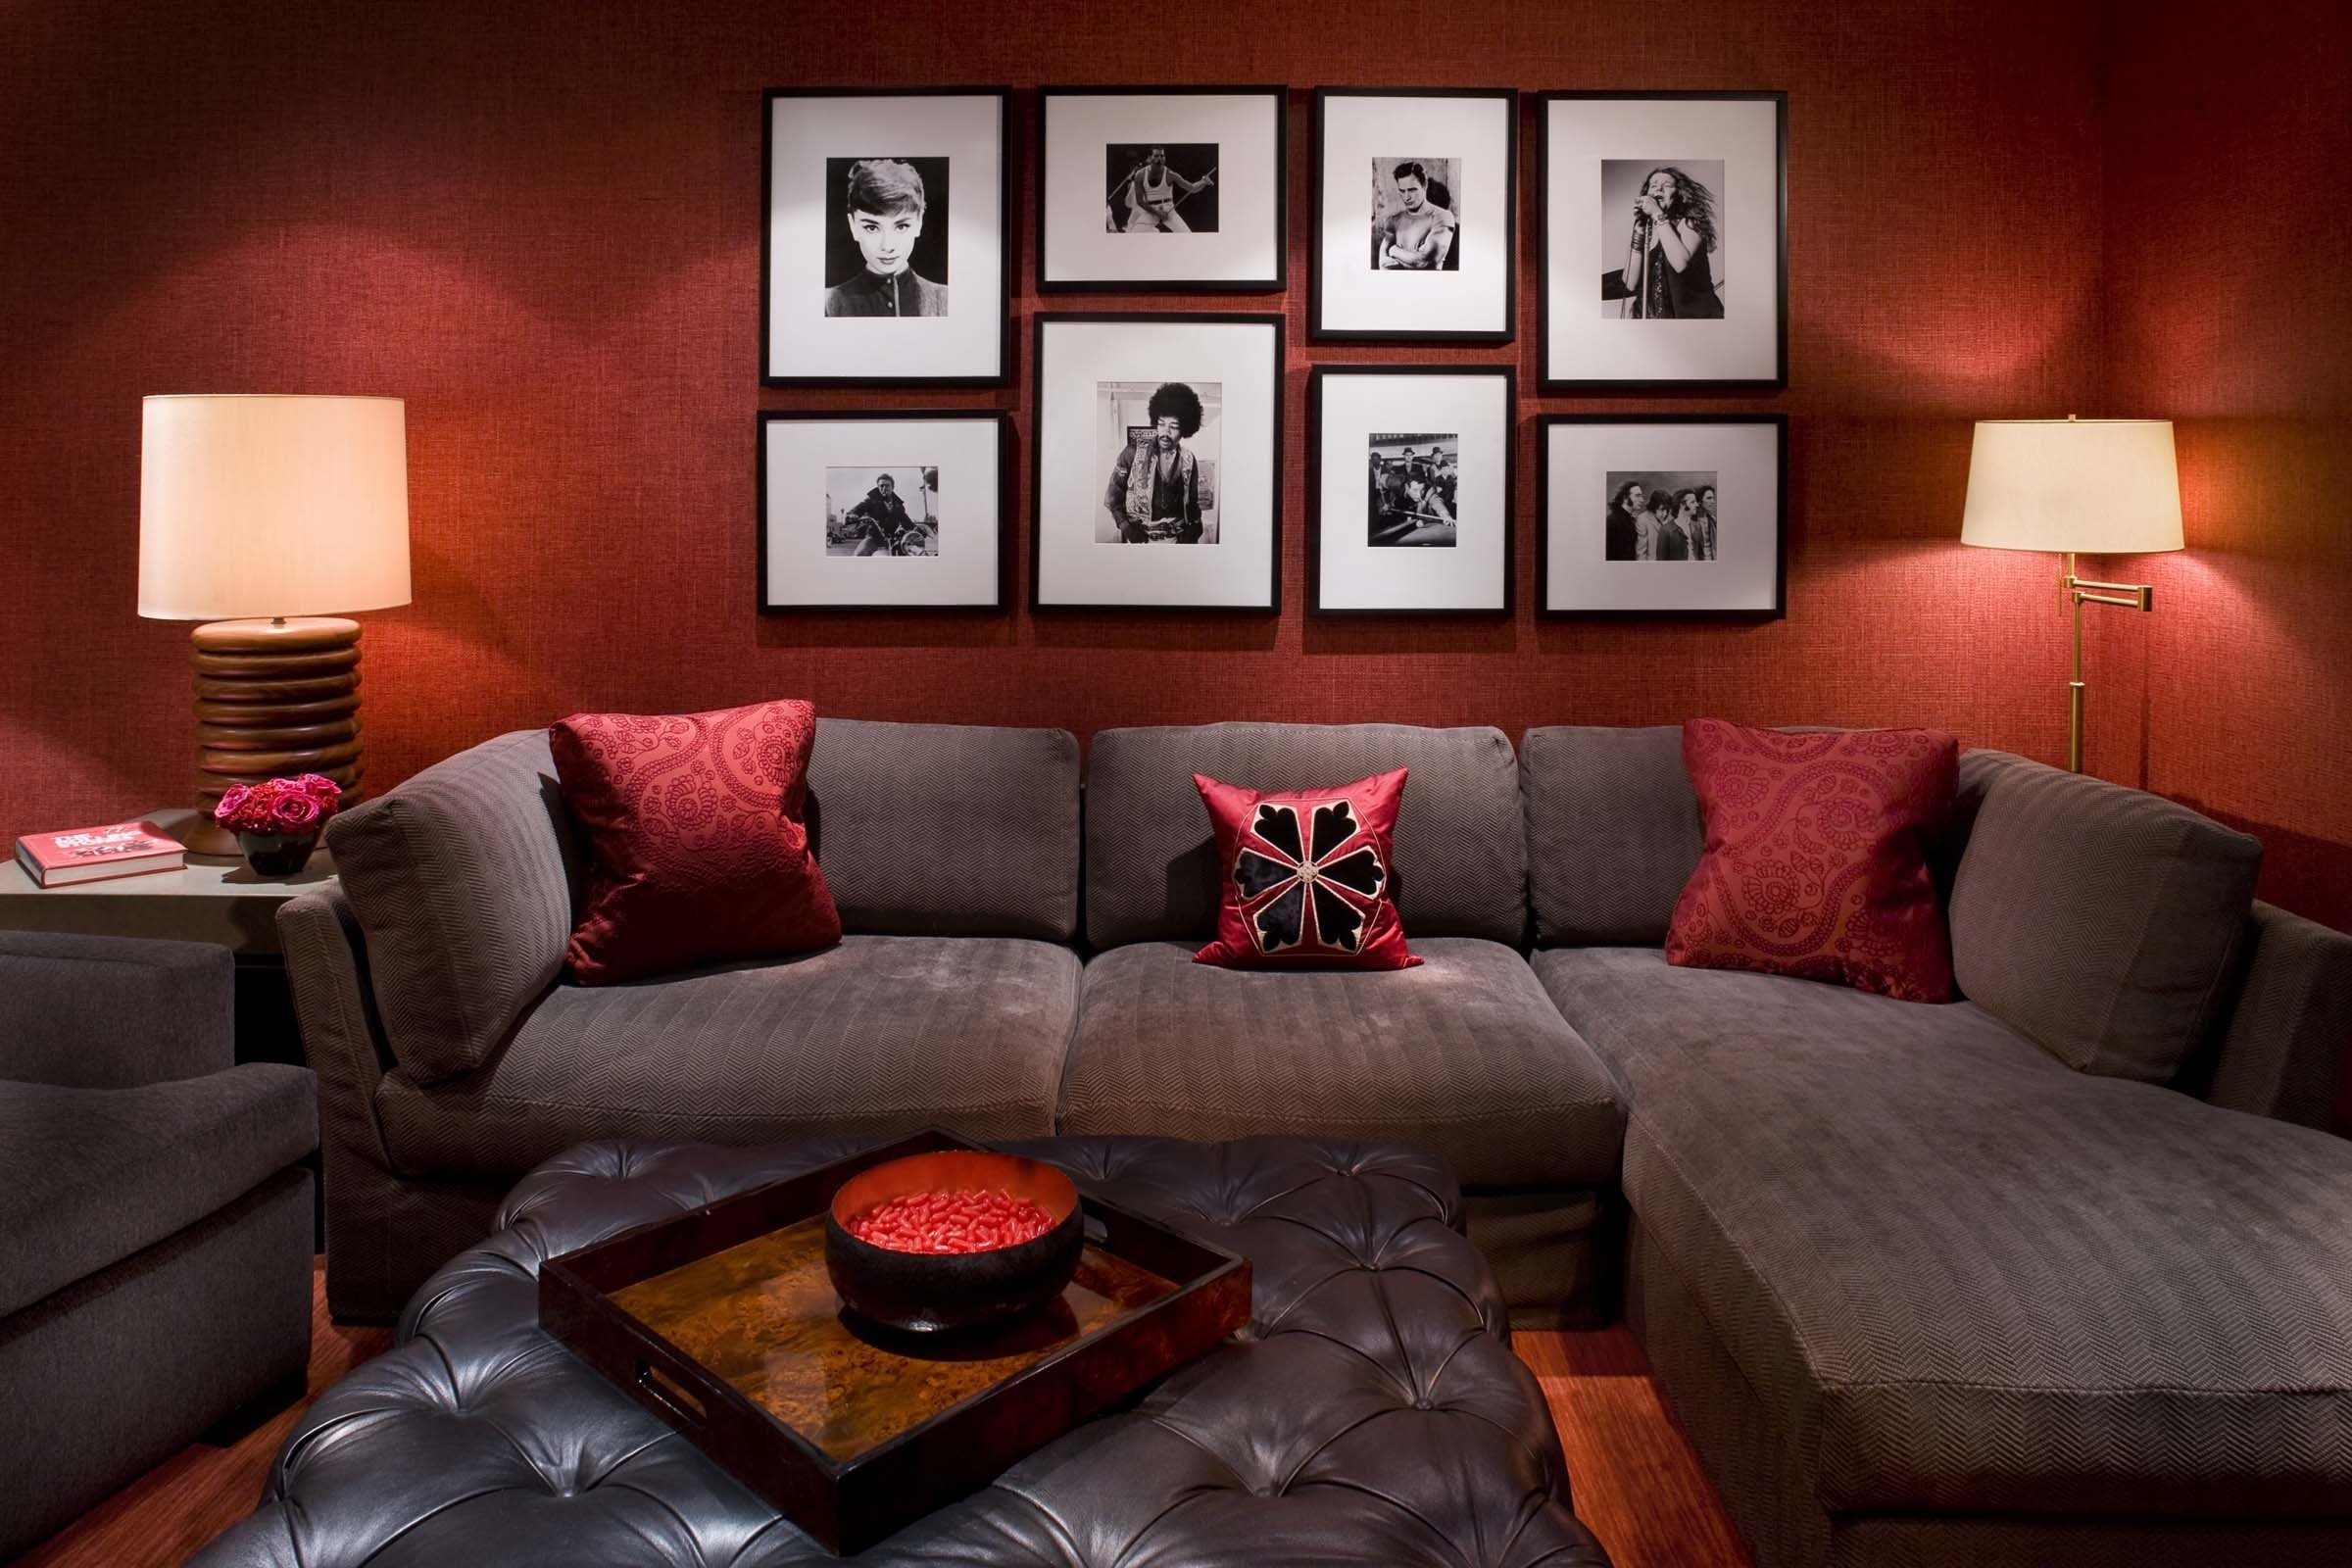 10 Best Red And Brown Living Room Ideas red living room with brown furniture living room decorating design 2020